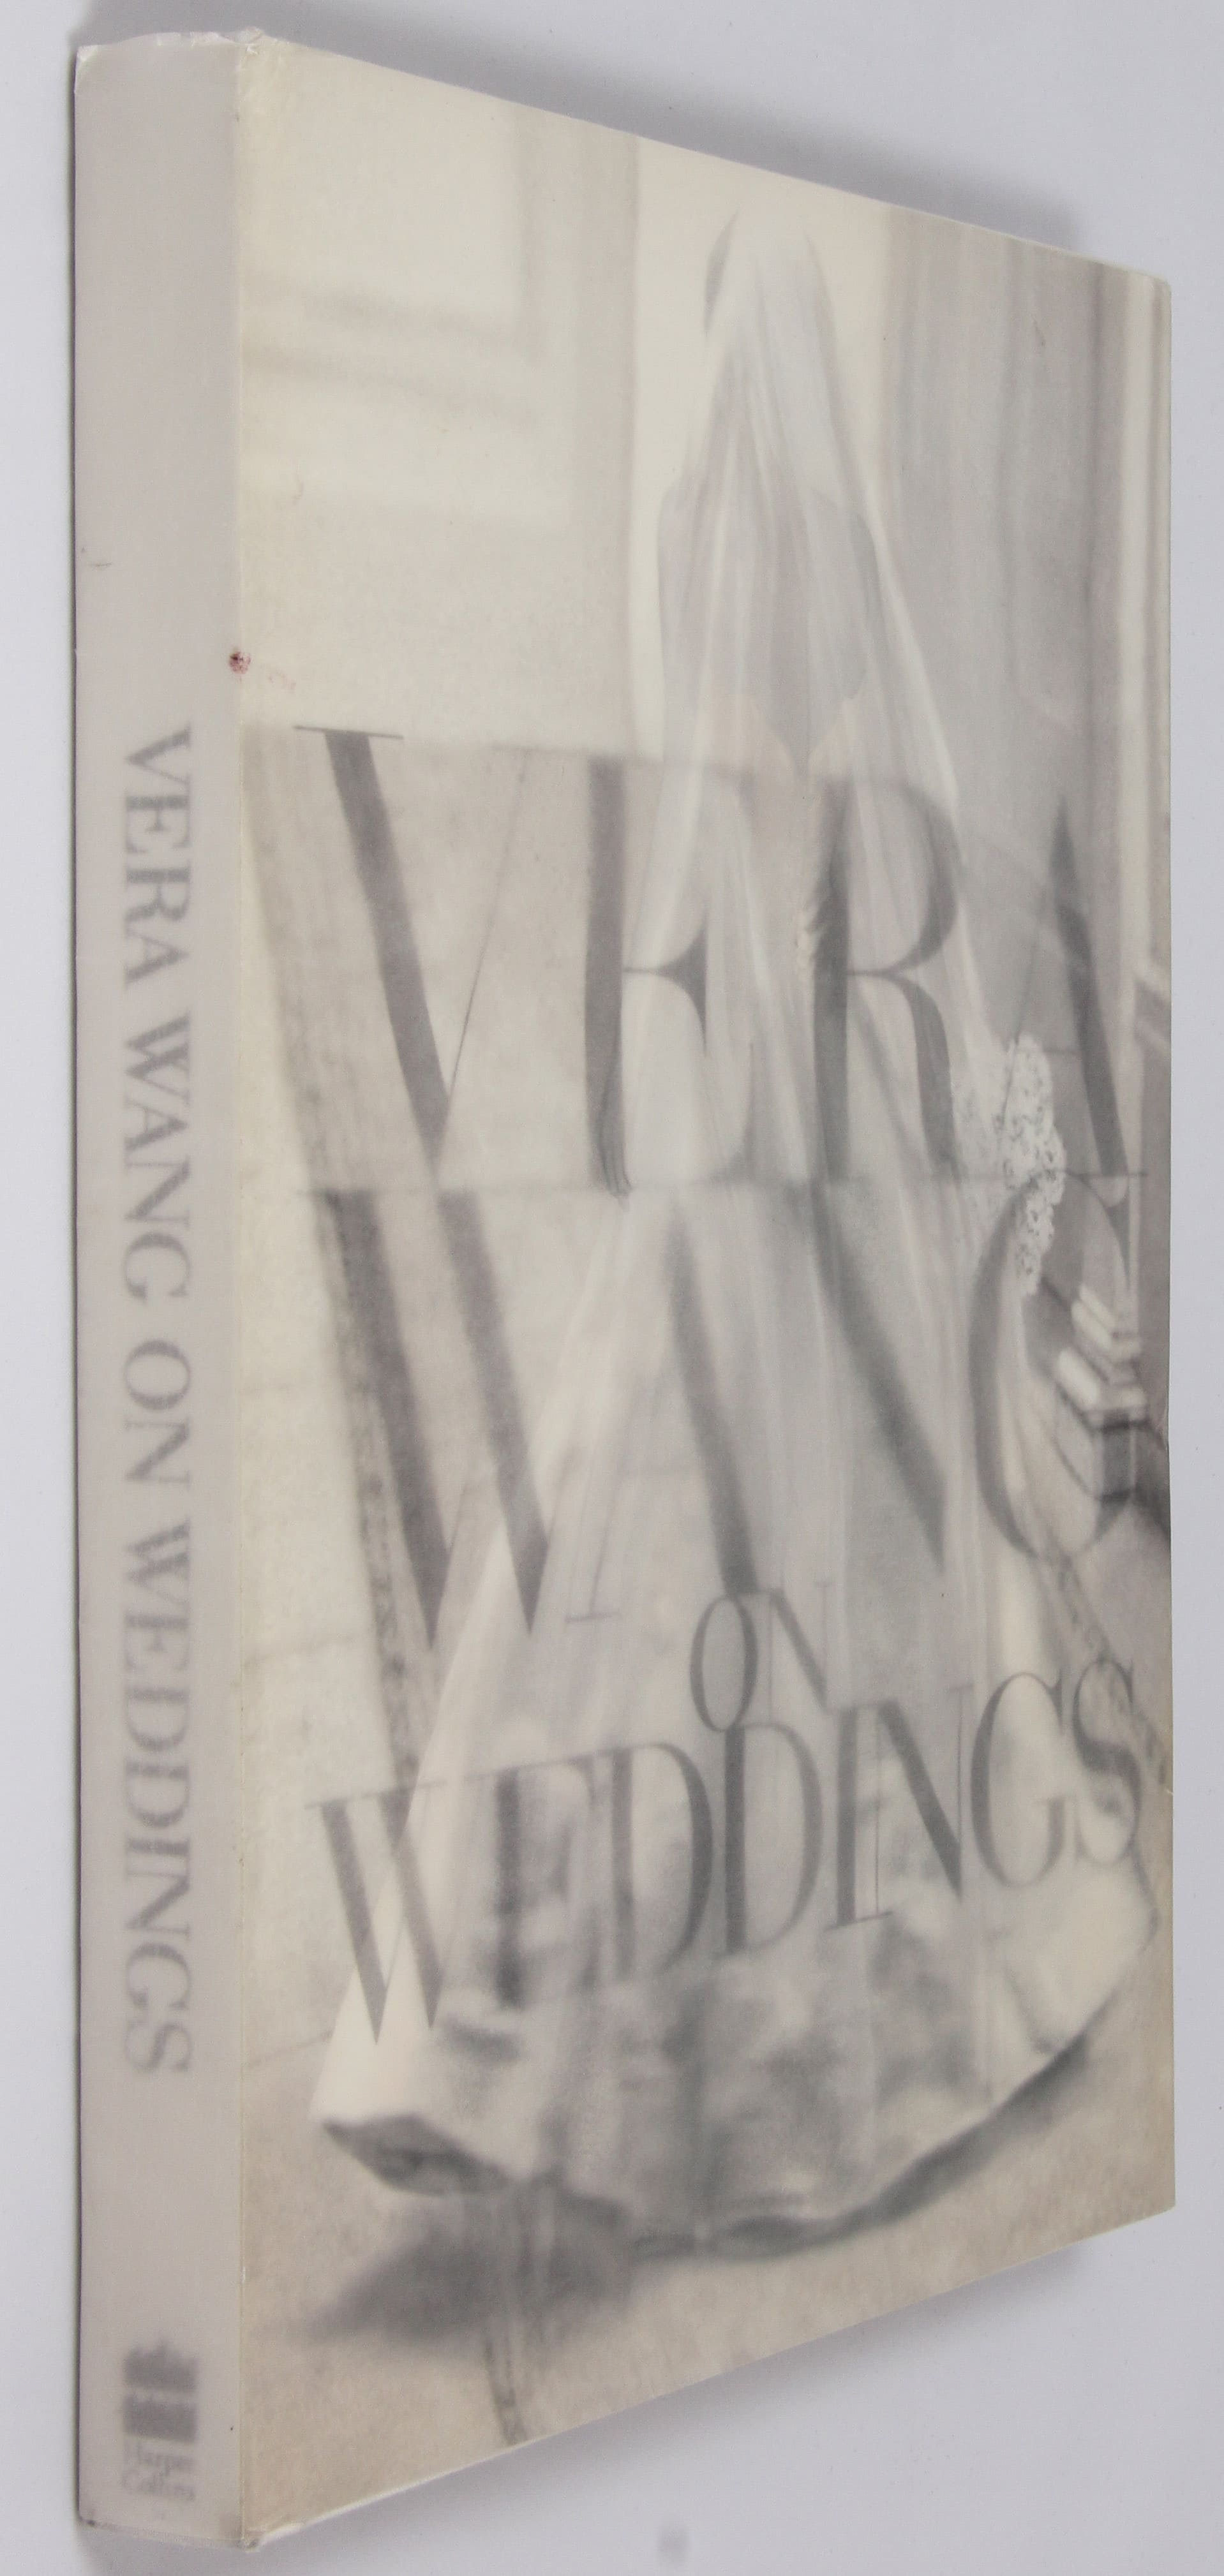 Vera Wang On Weddings Signed Presentation